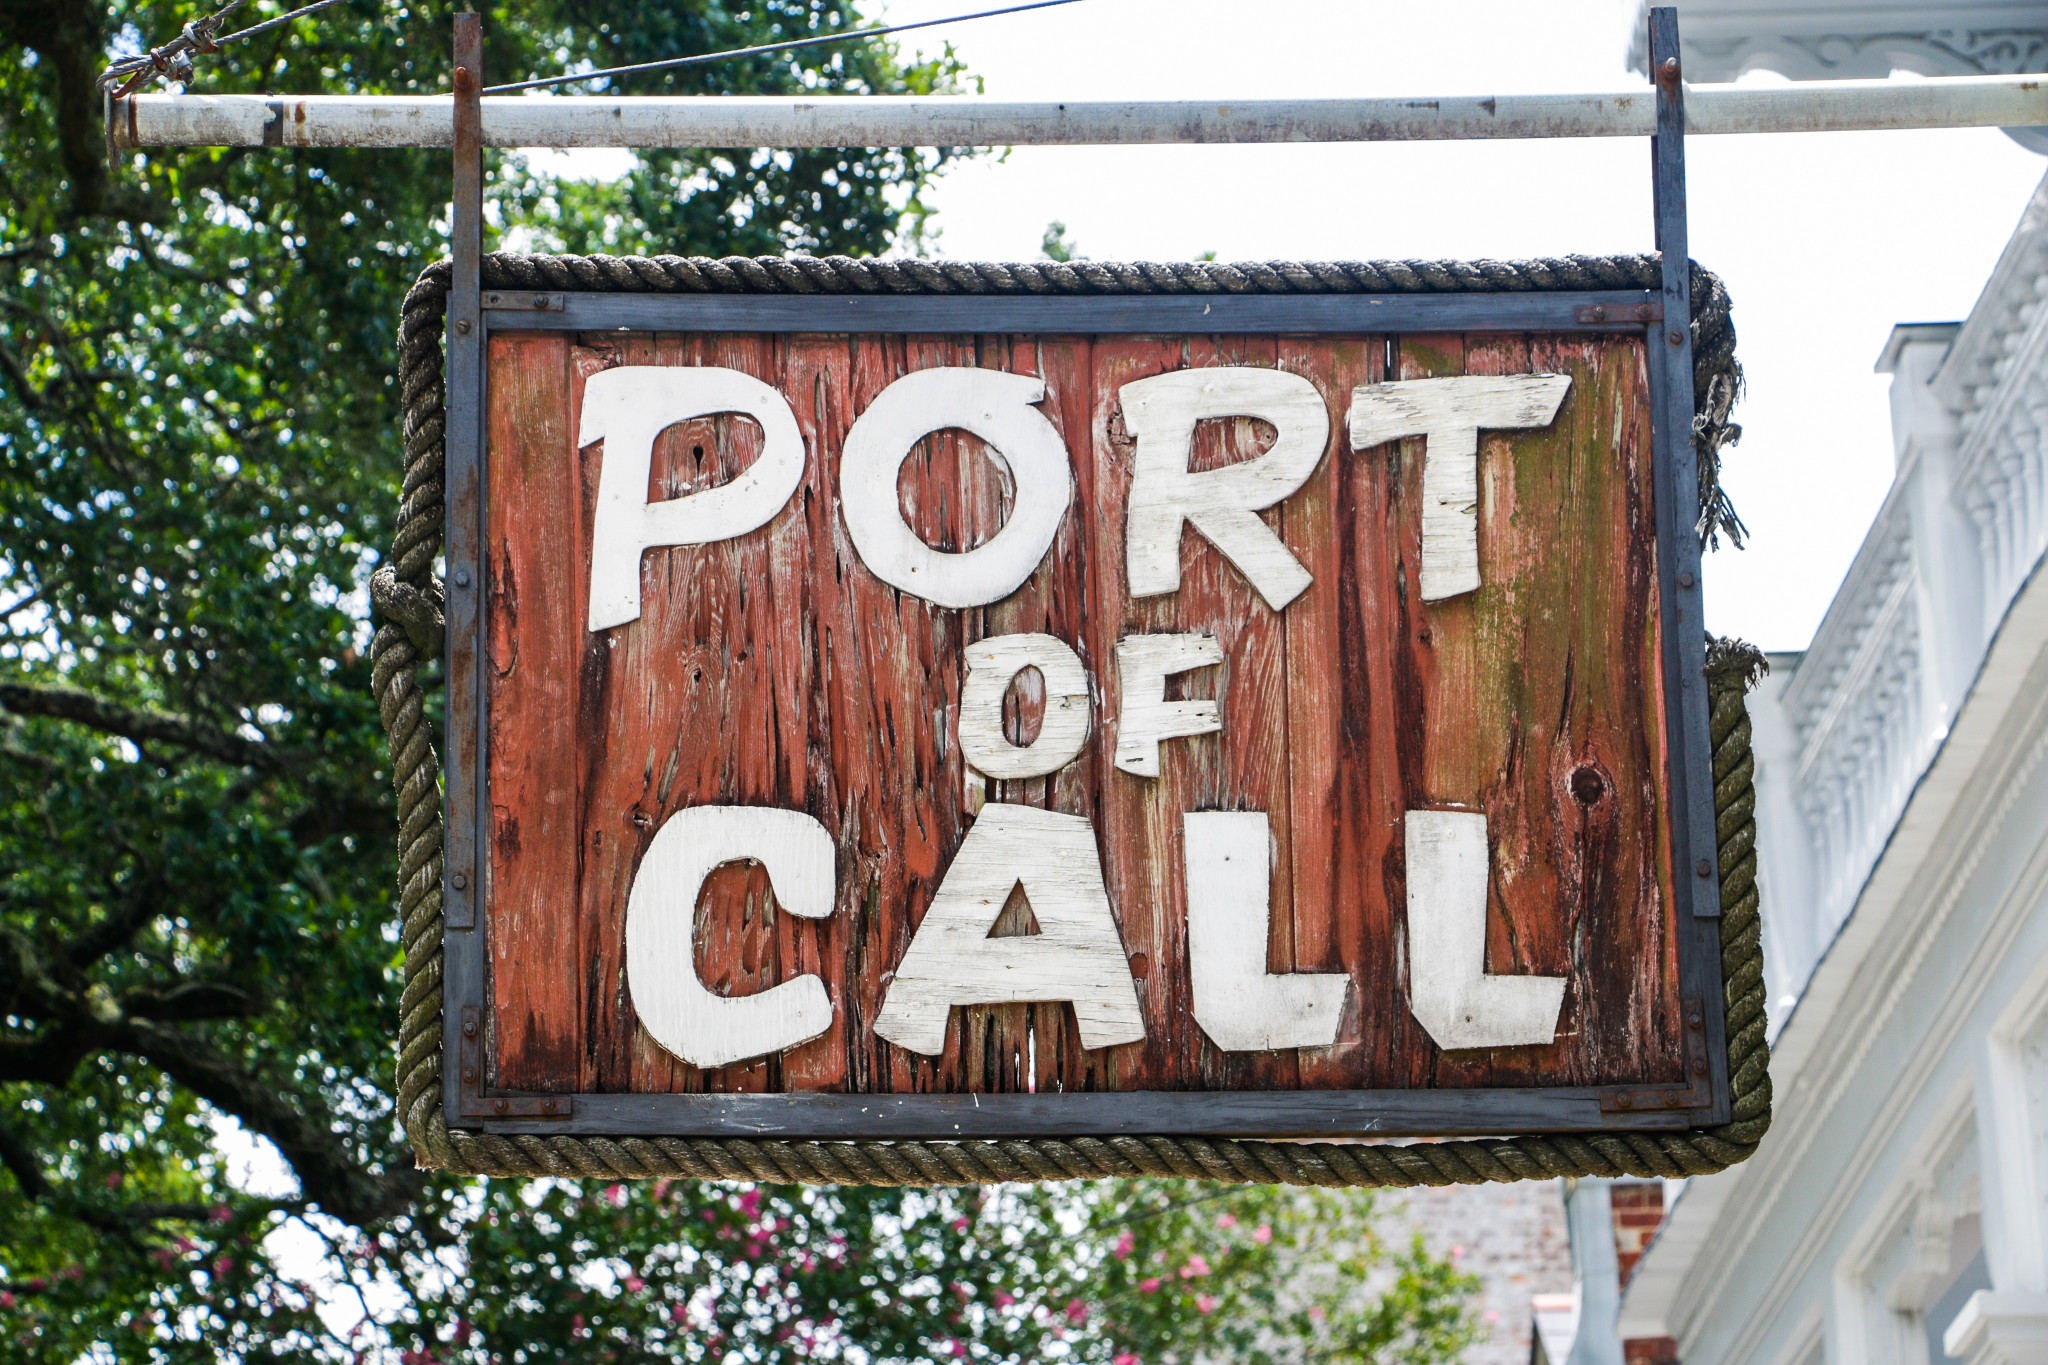 If you've never been to New Orleans, you have to go to Port of Call.